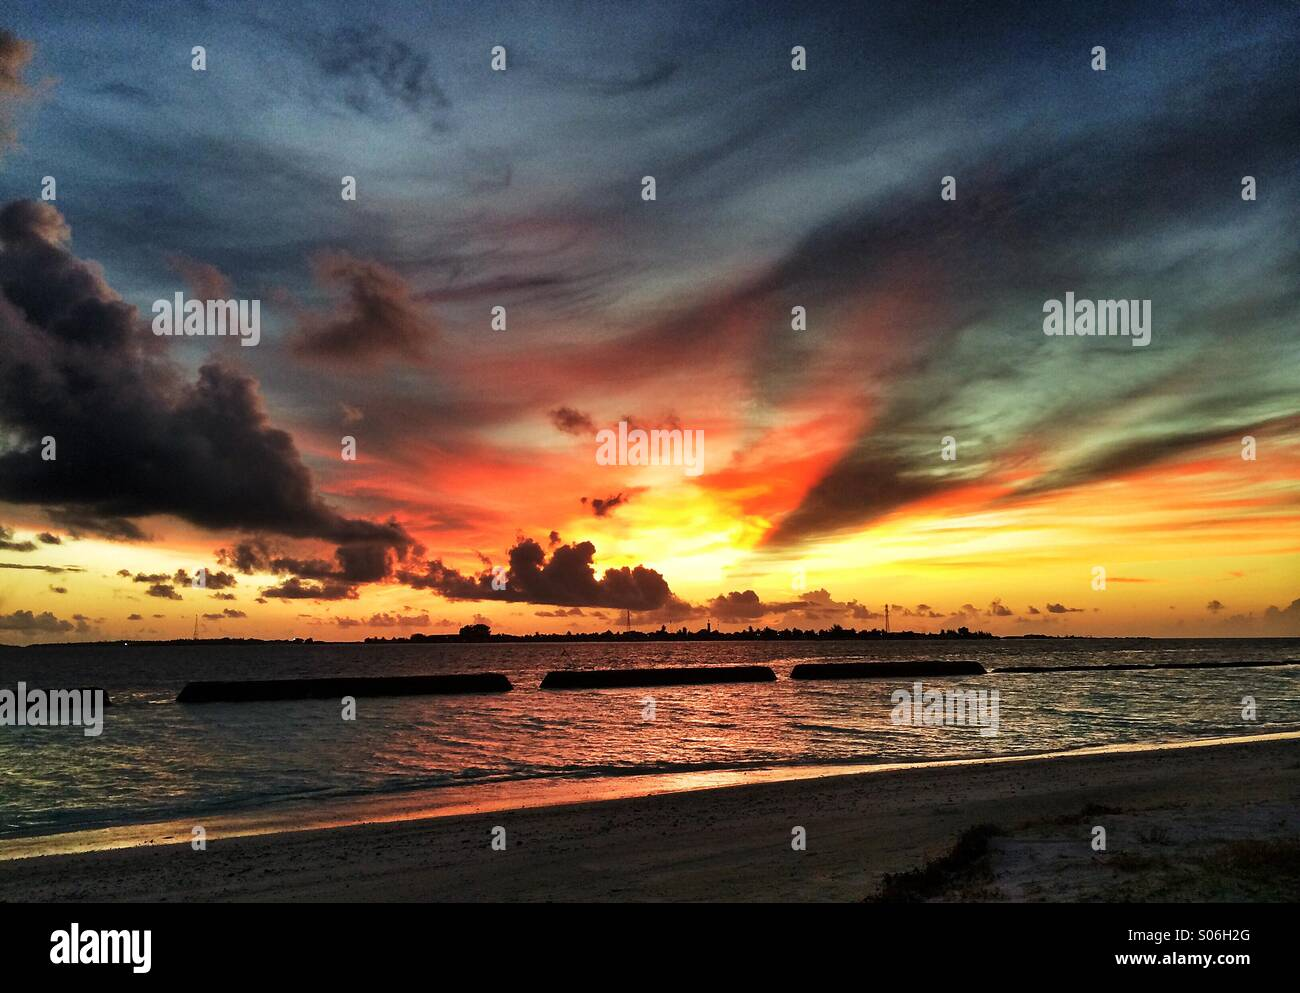 Maldives sunset - Stock Image